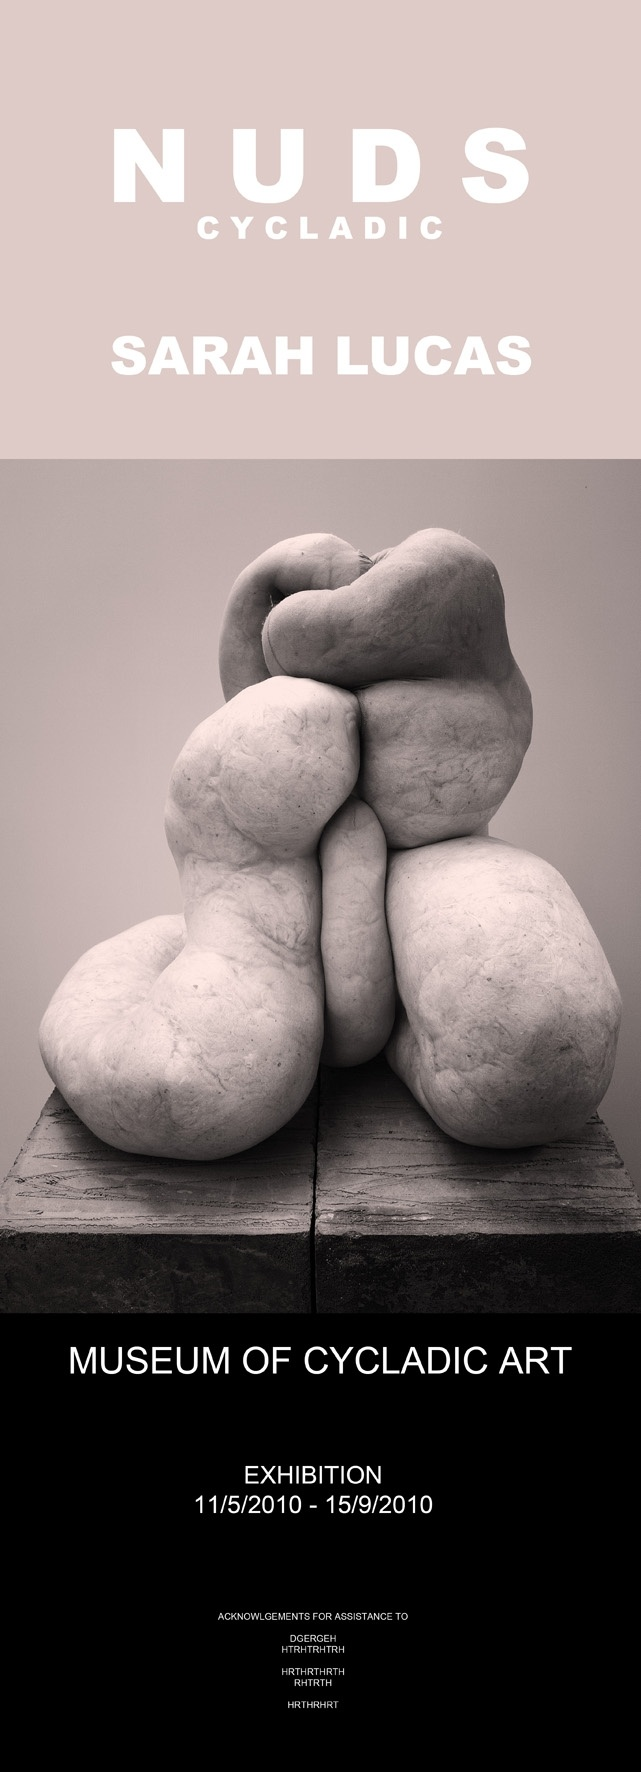 """""""Nuds Cycladic - Sarah Lucas"""" exhibition poster"""